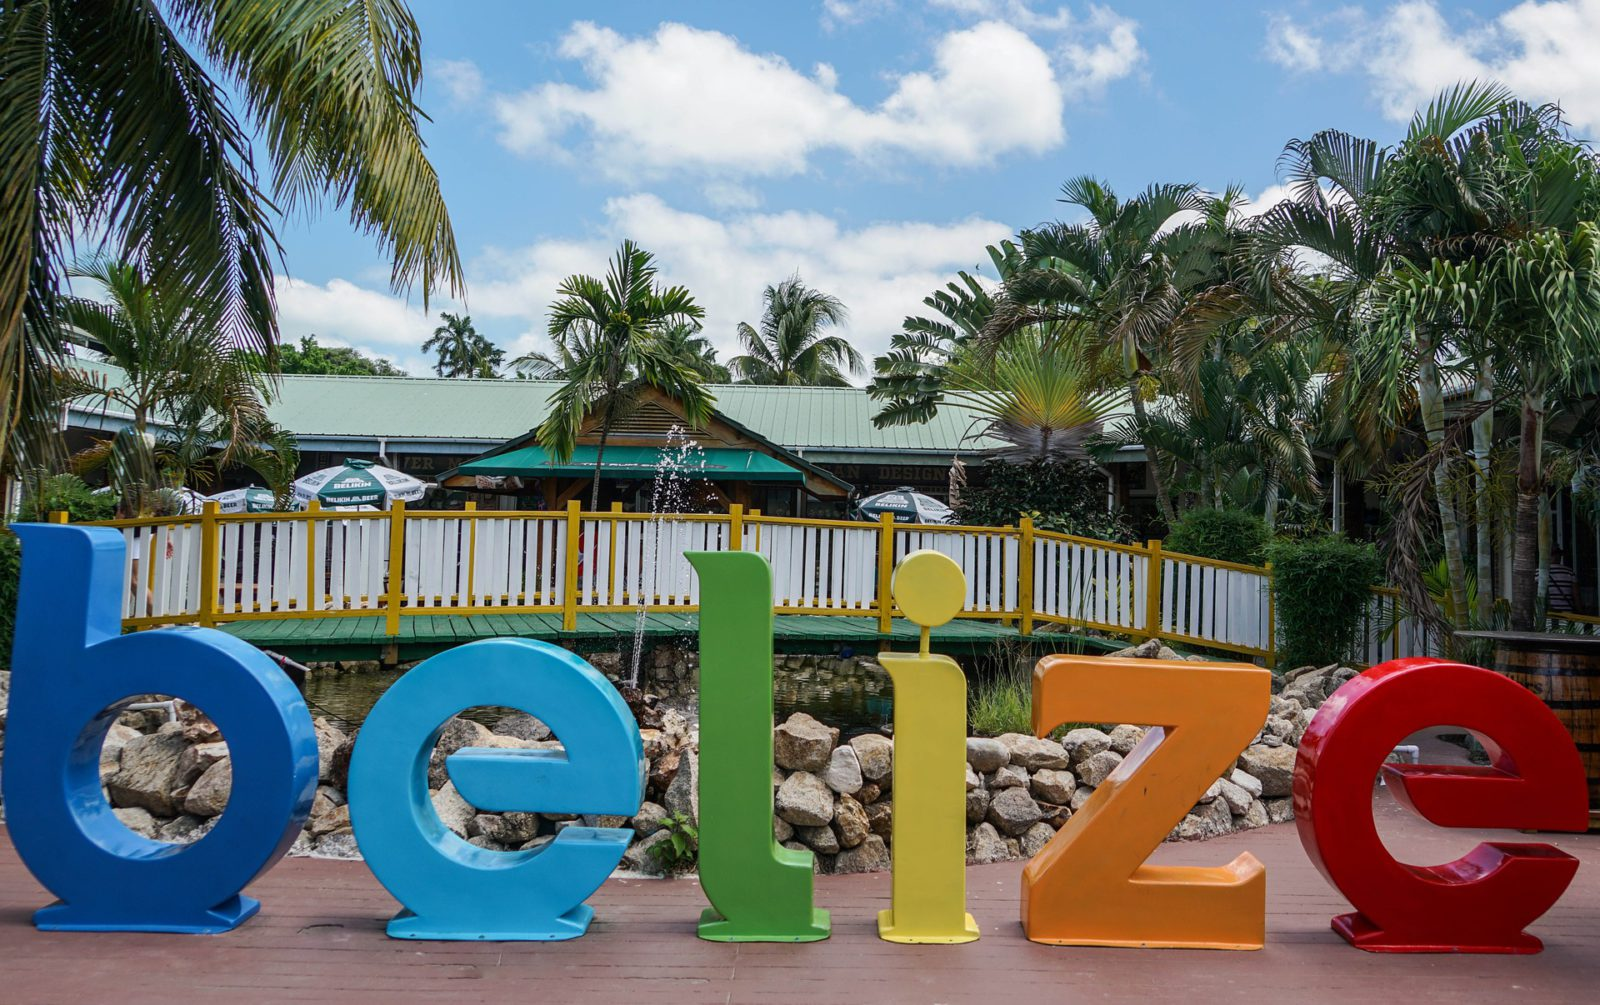 Flight Deal Round Trip From San Francisco Area to Belize #sanfrancisco #belize #extendedweekend